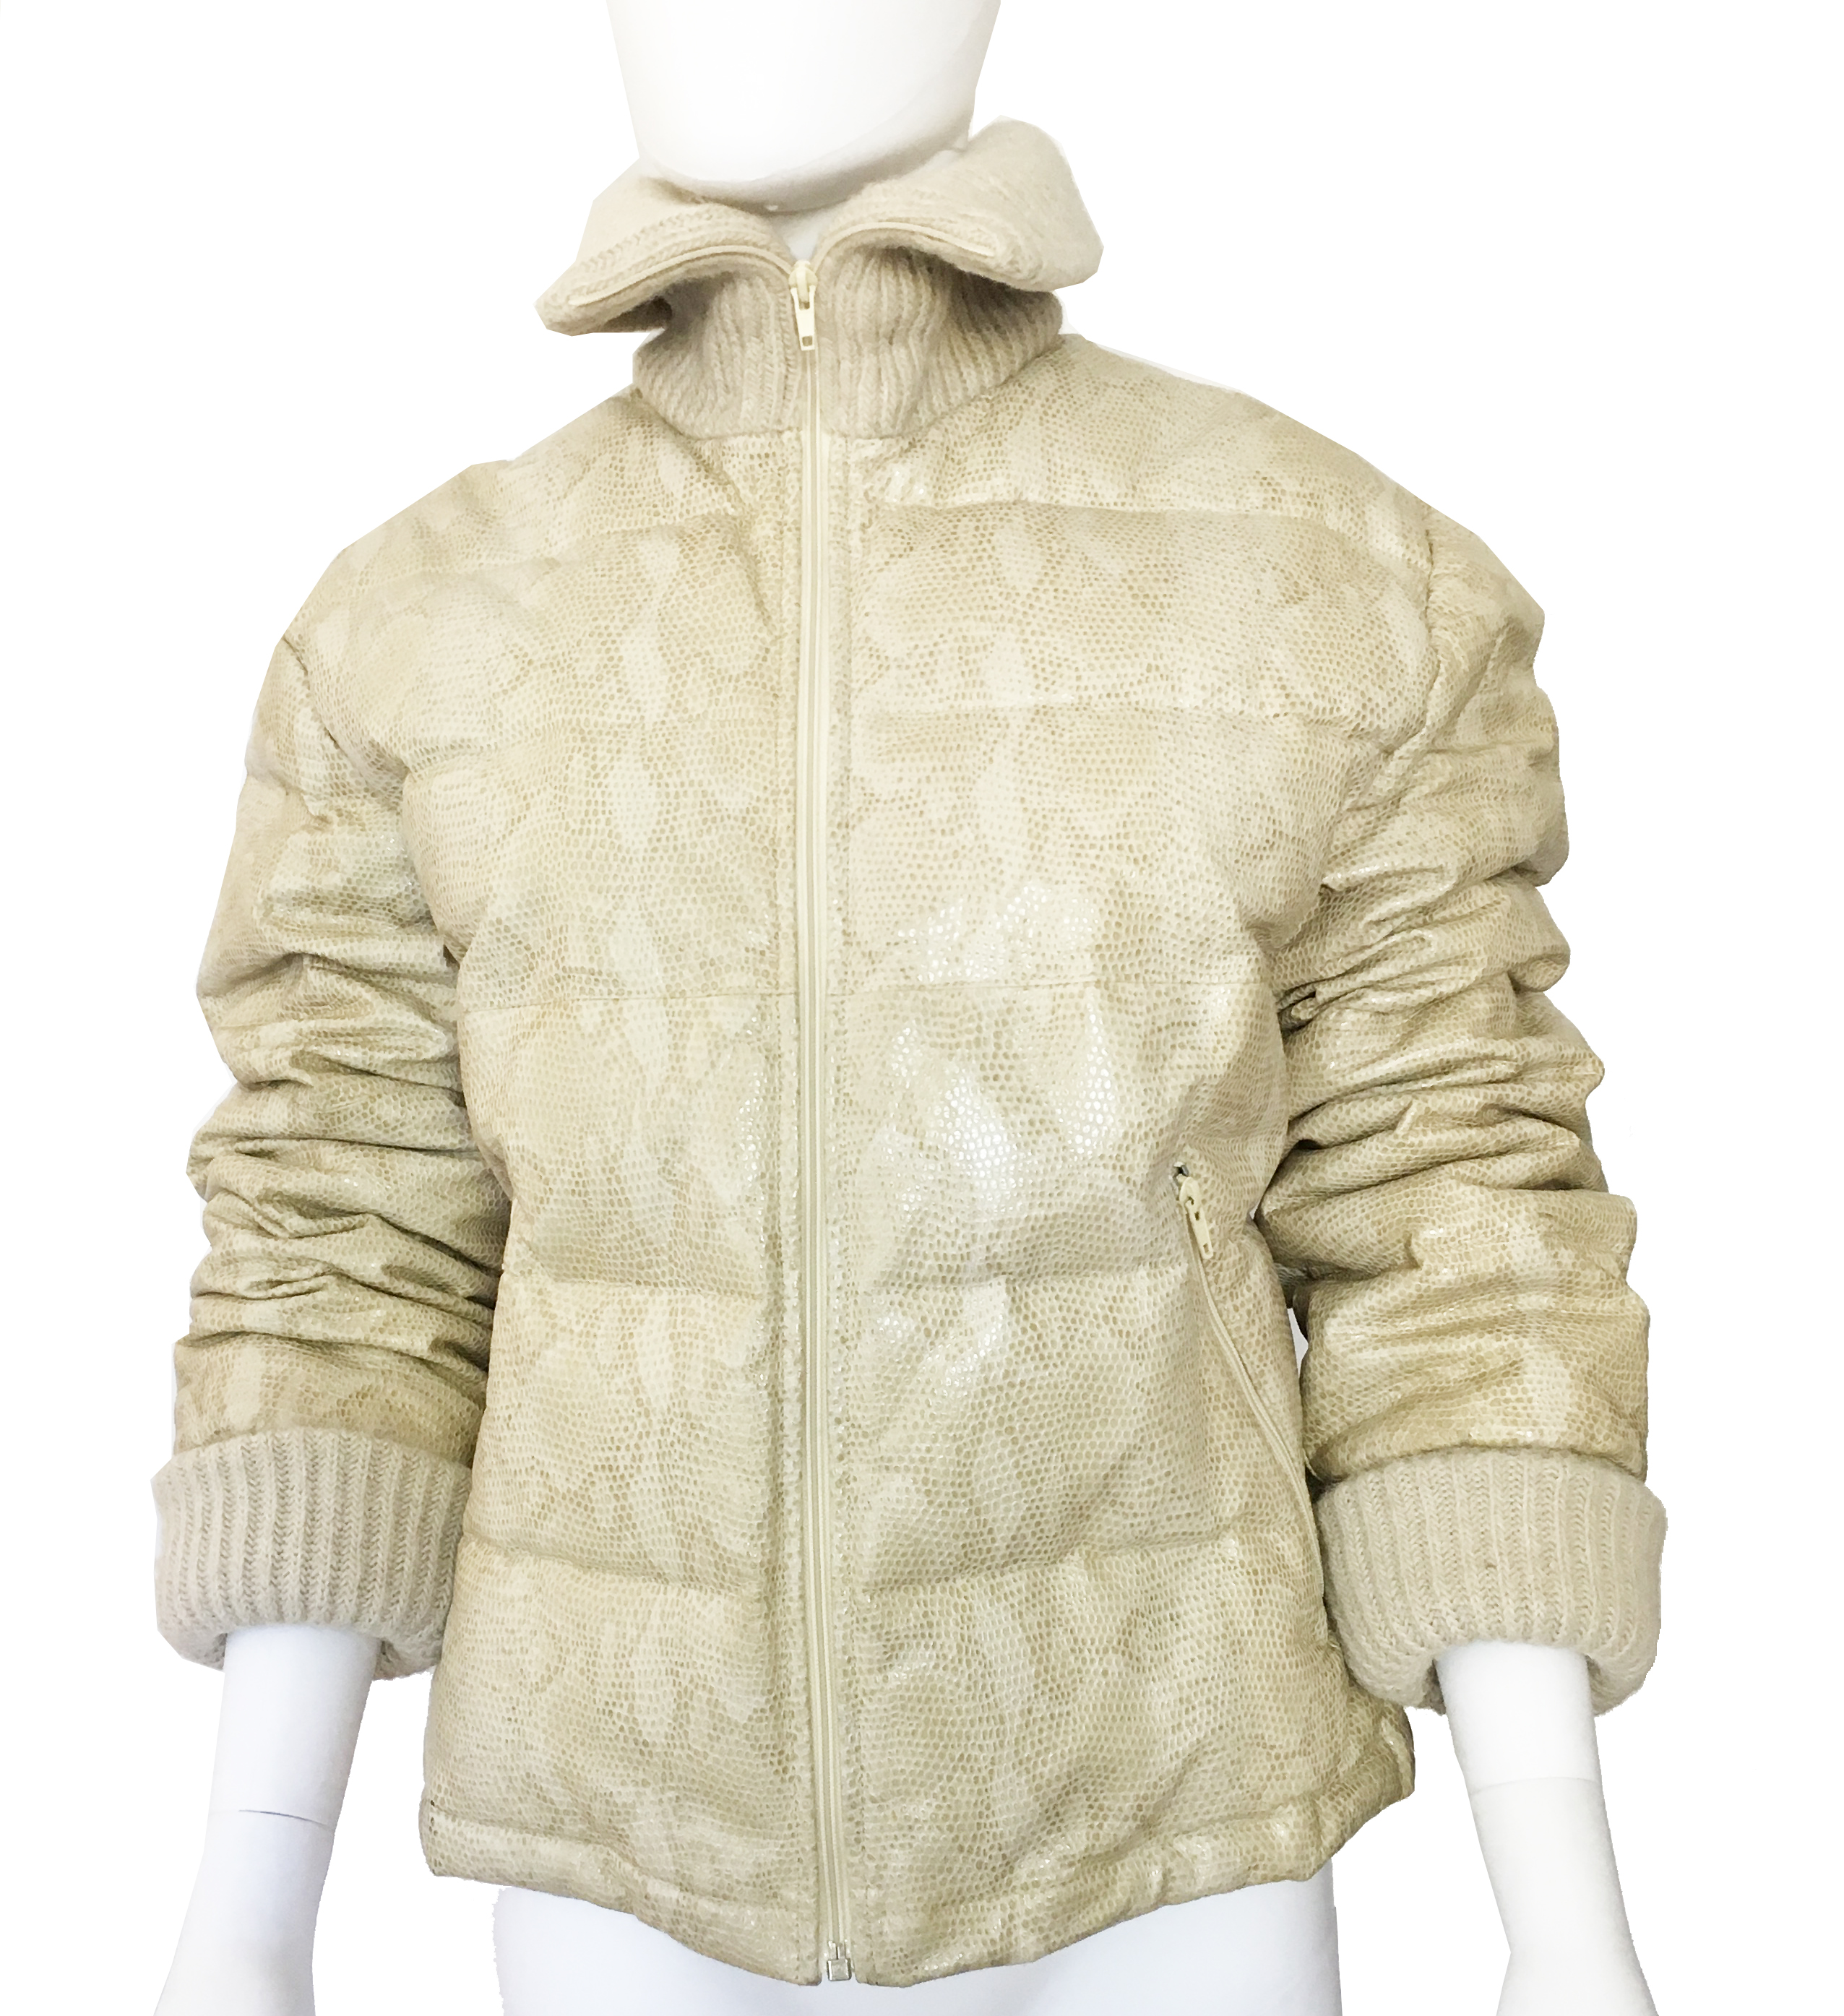 Leather Snake Print embossed Puffer Jacket by Iceberg.